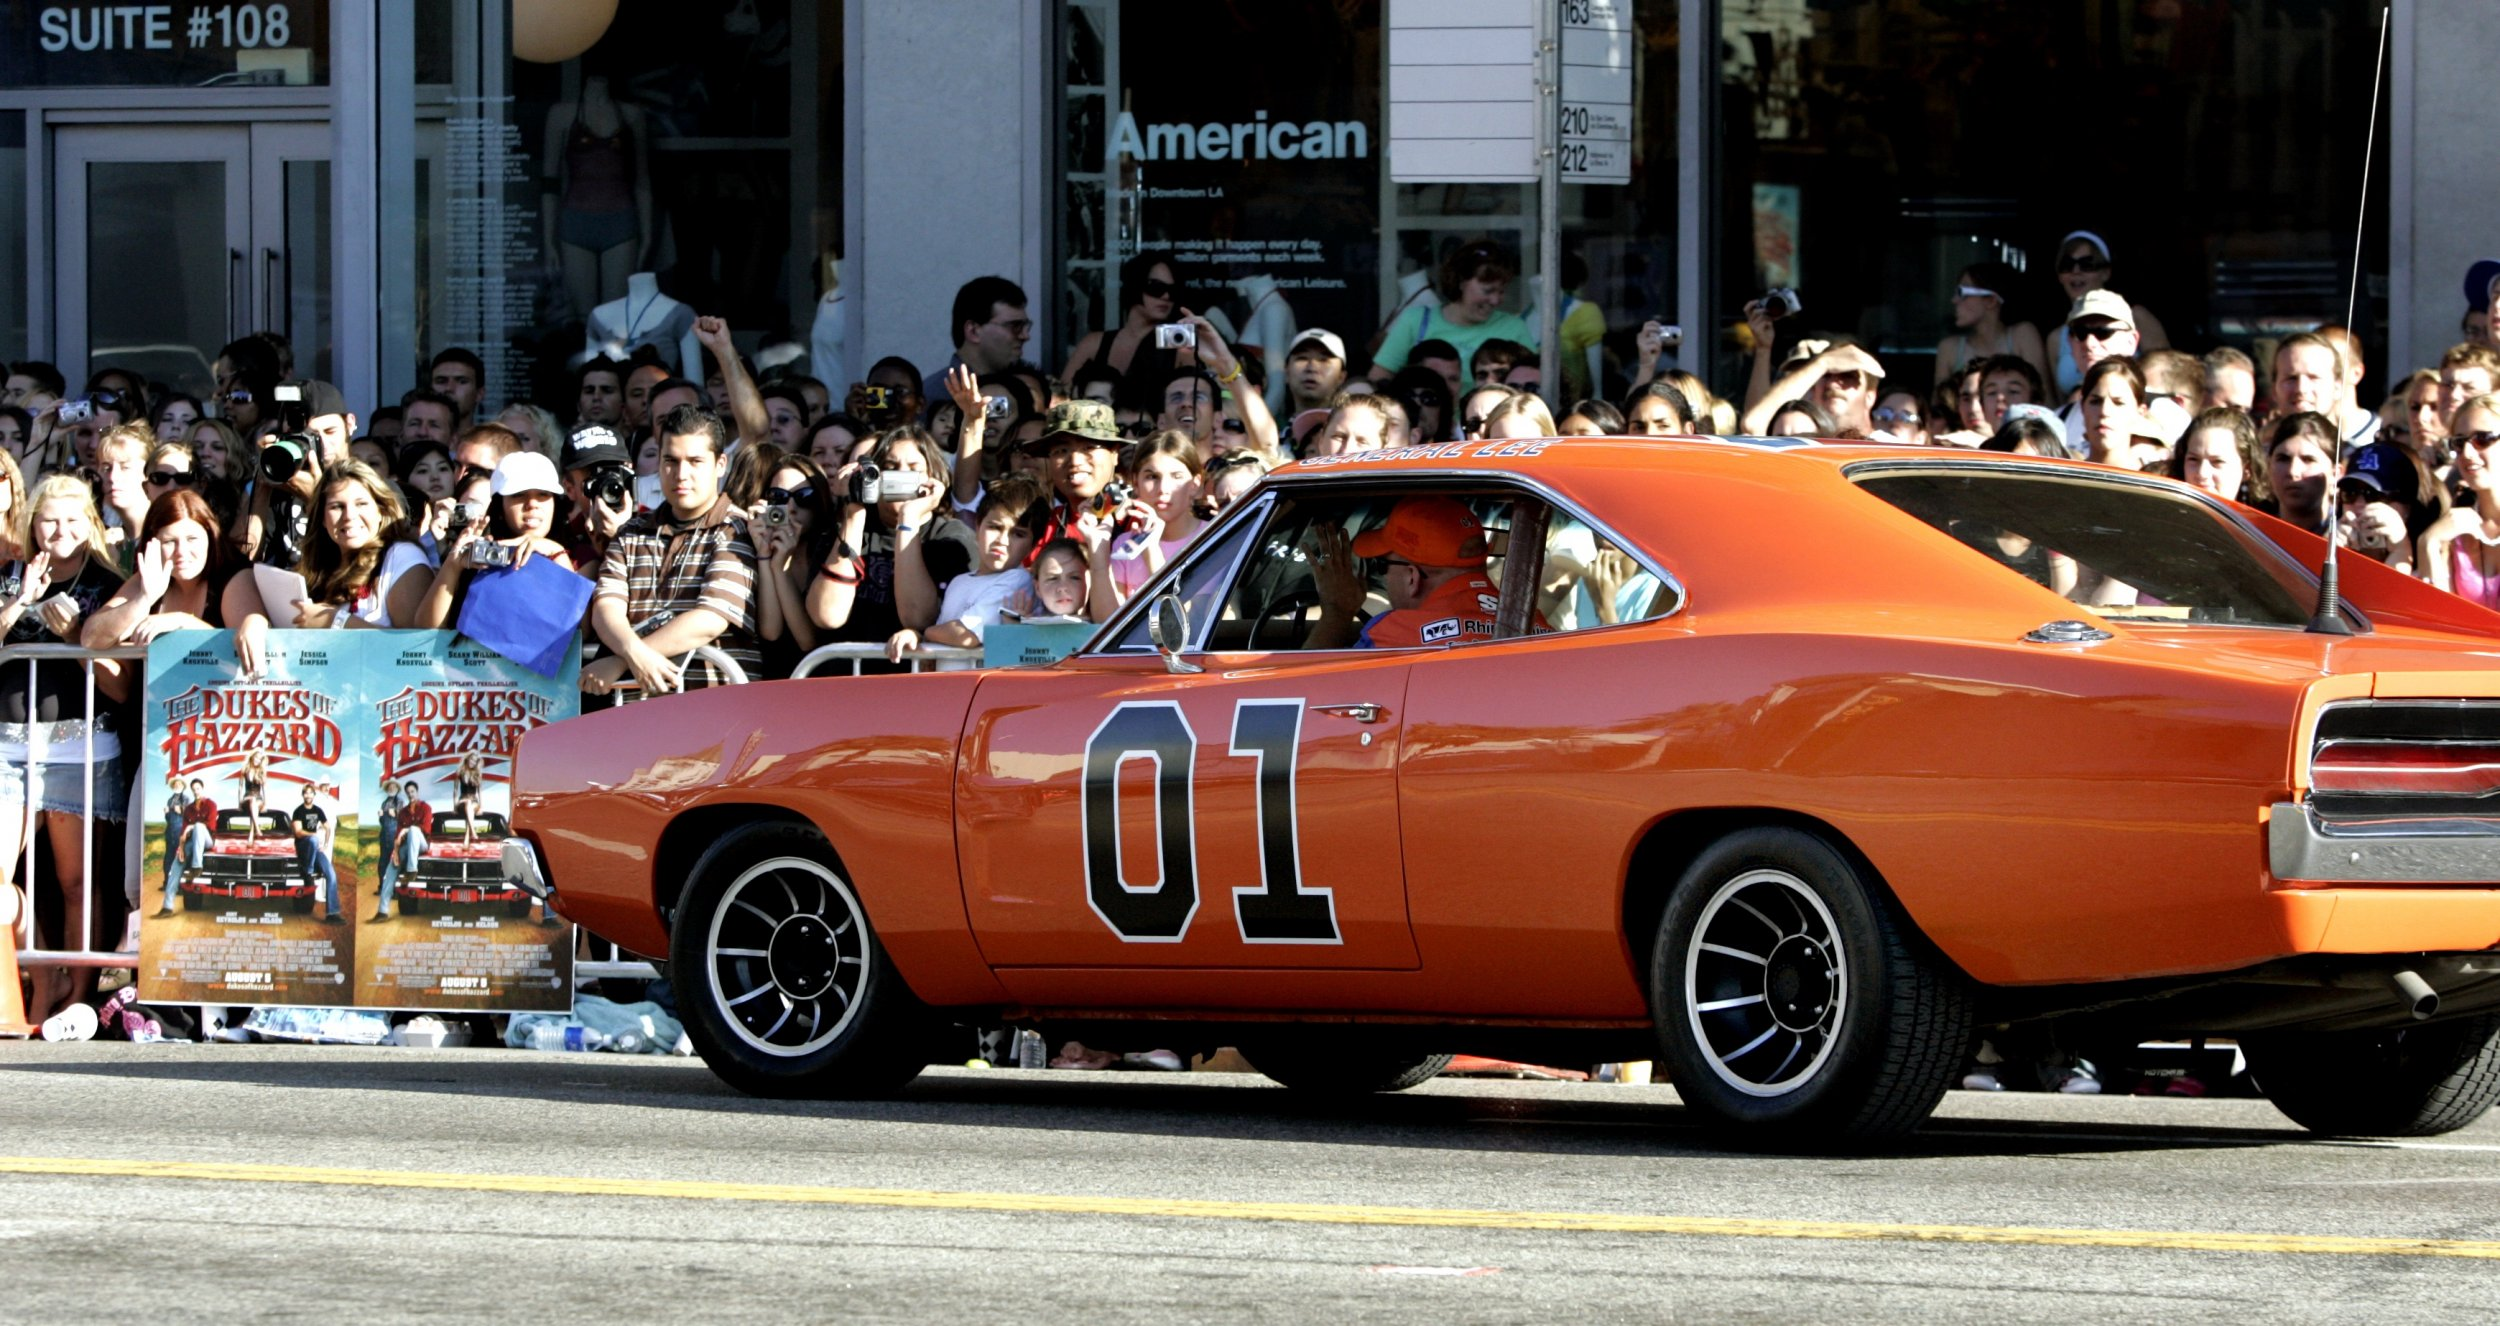 Wallpaper American Muscle Car Bubba Watson Will Paint Over Confederate Flag On The